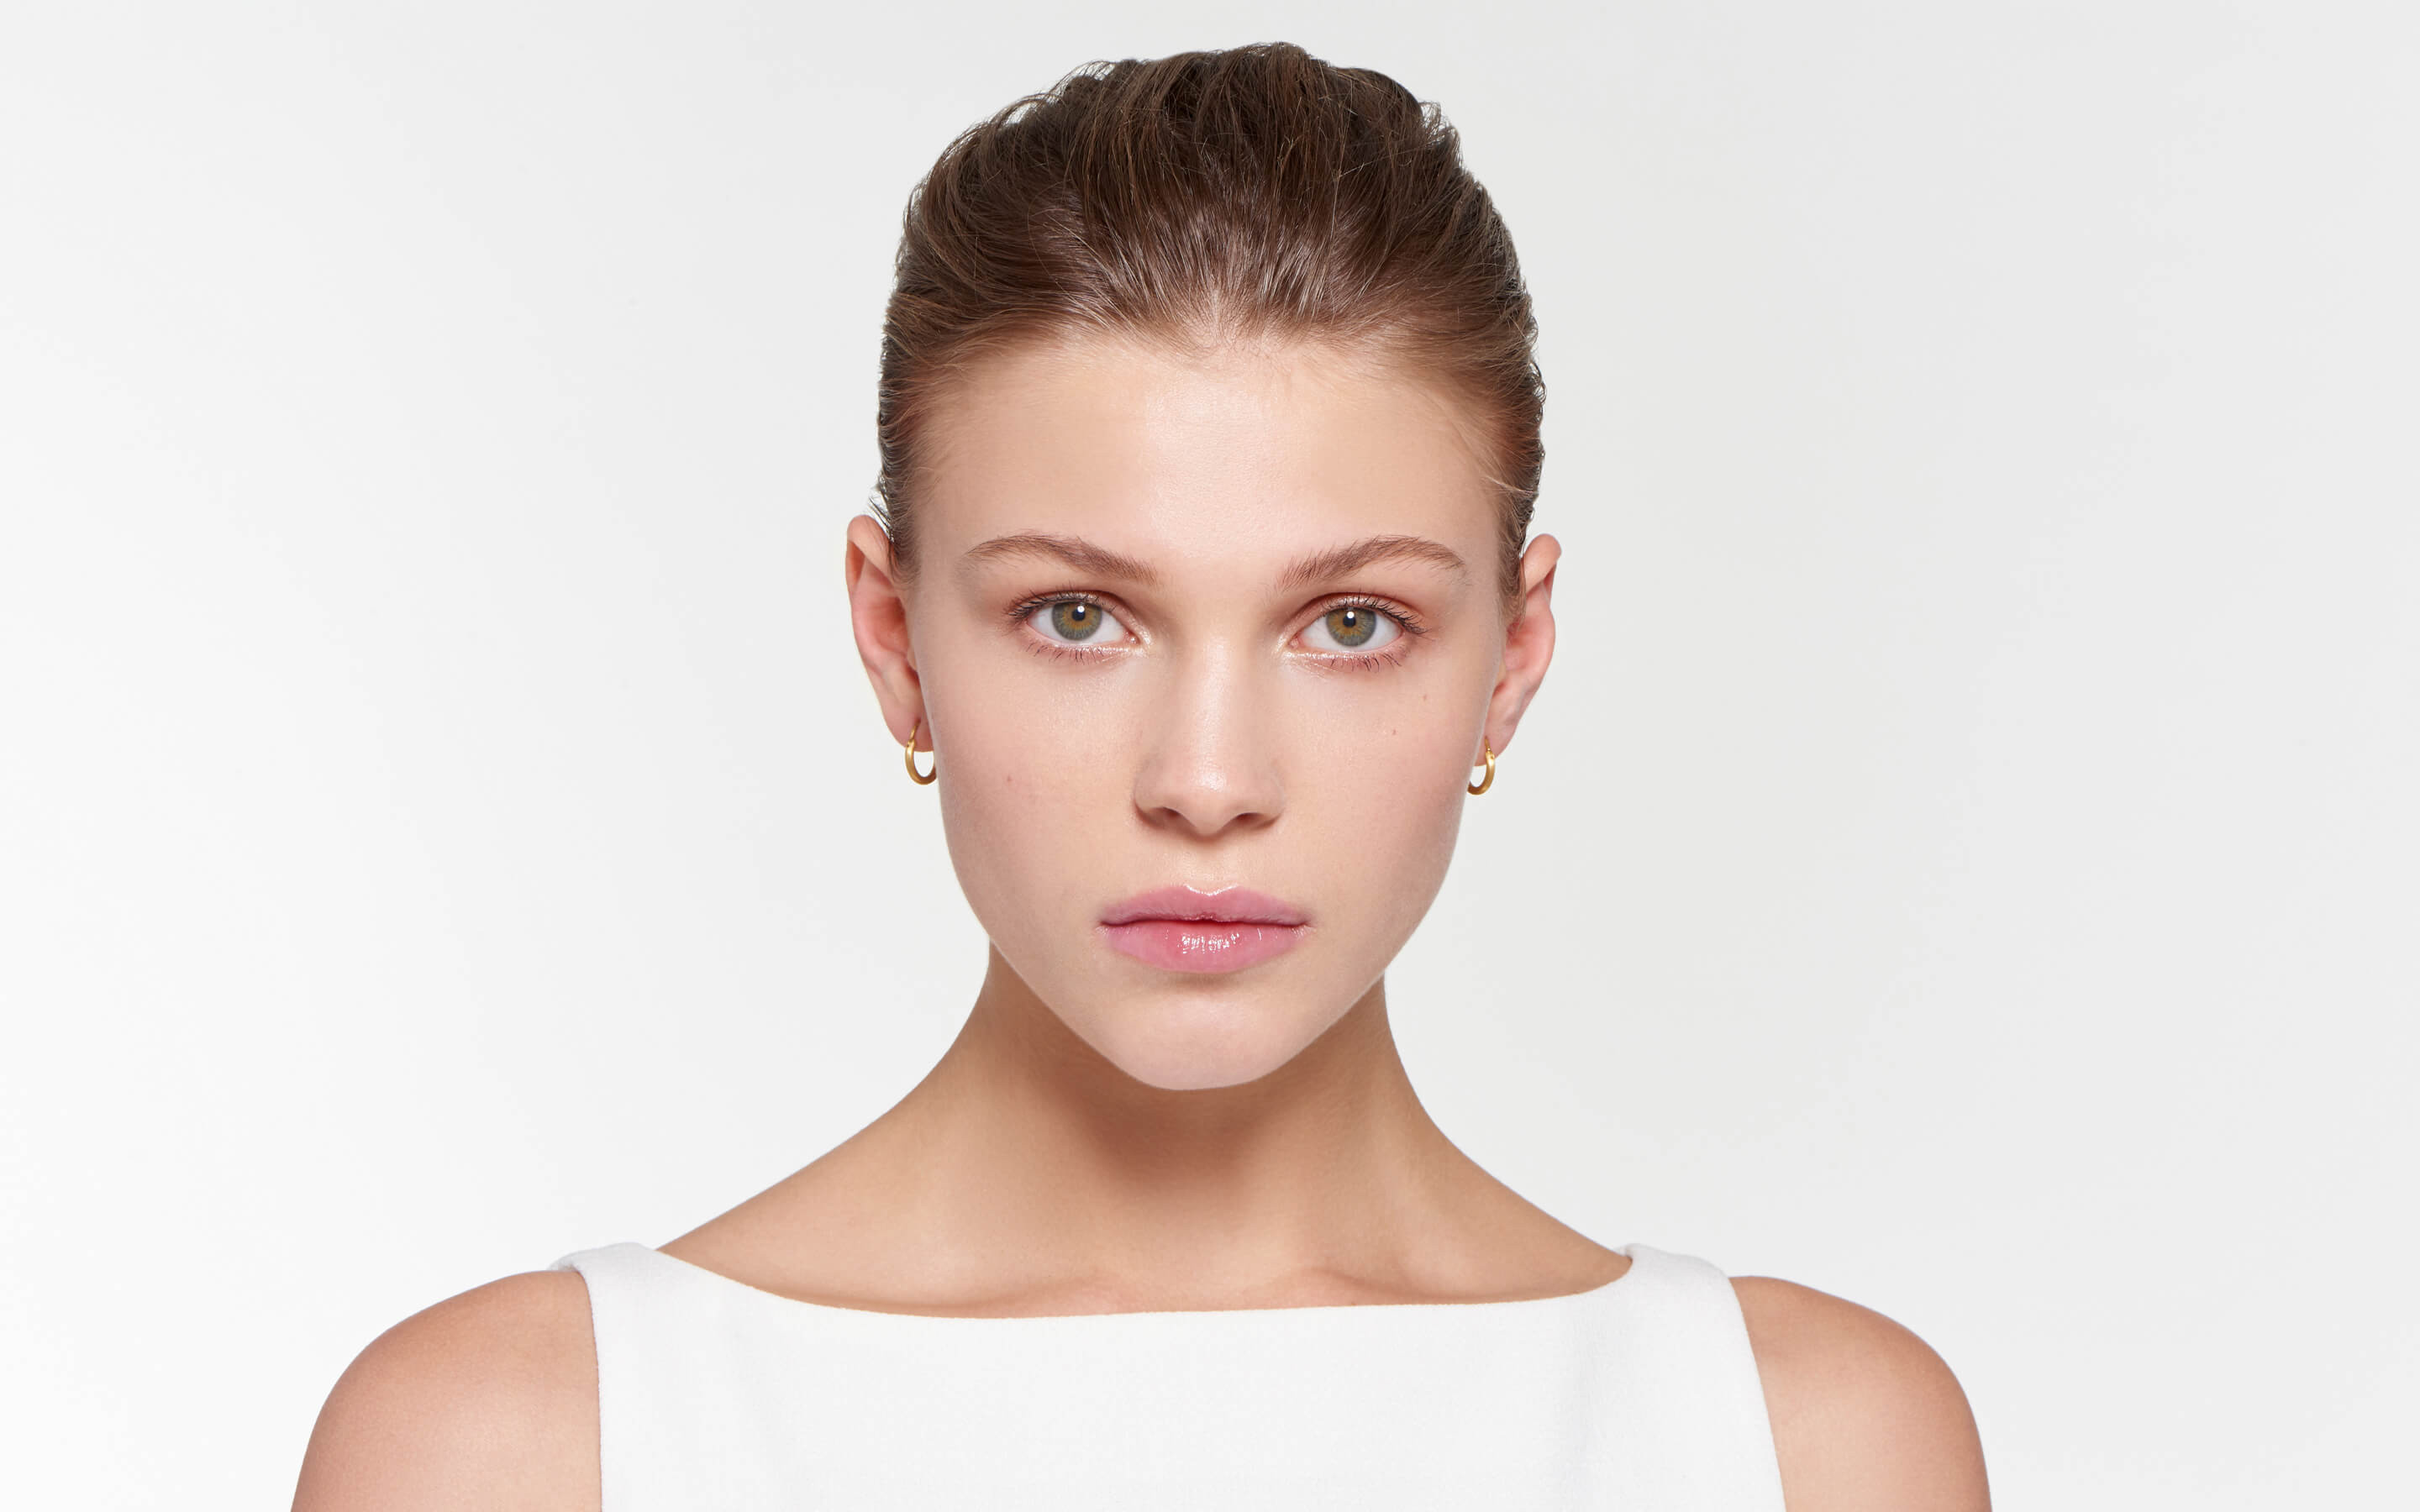 attractive model adorned with 22 karat gold hoop earrings in satin finish